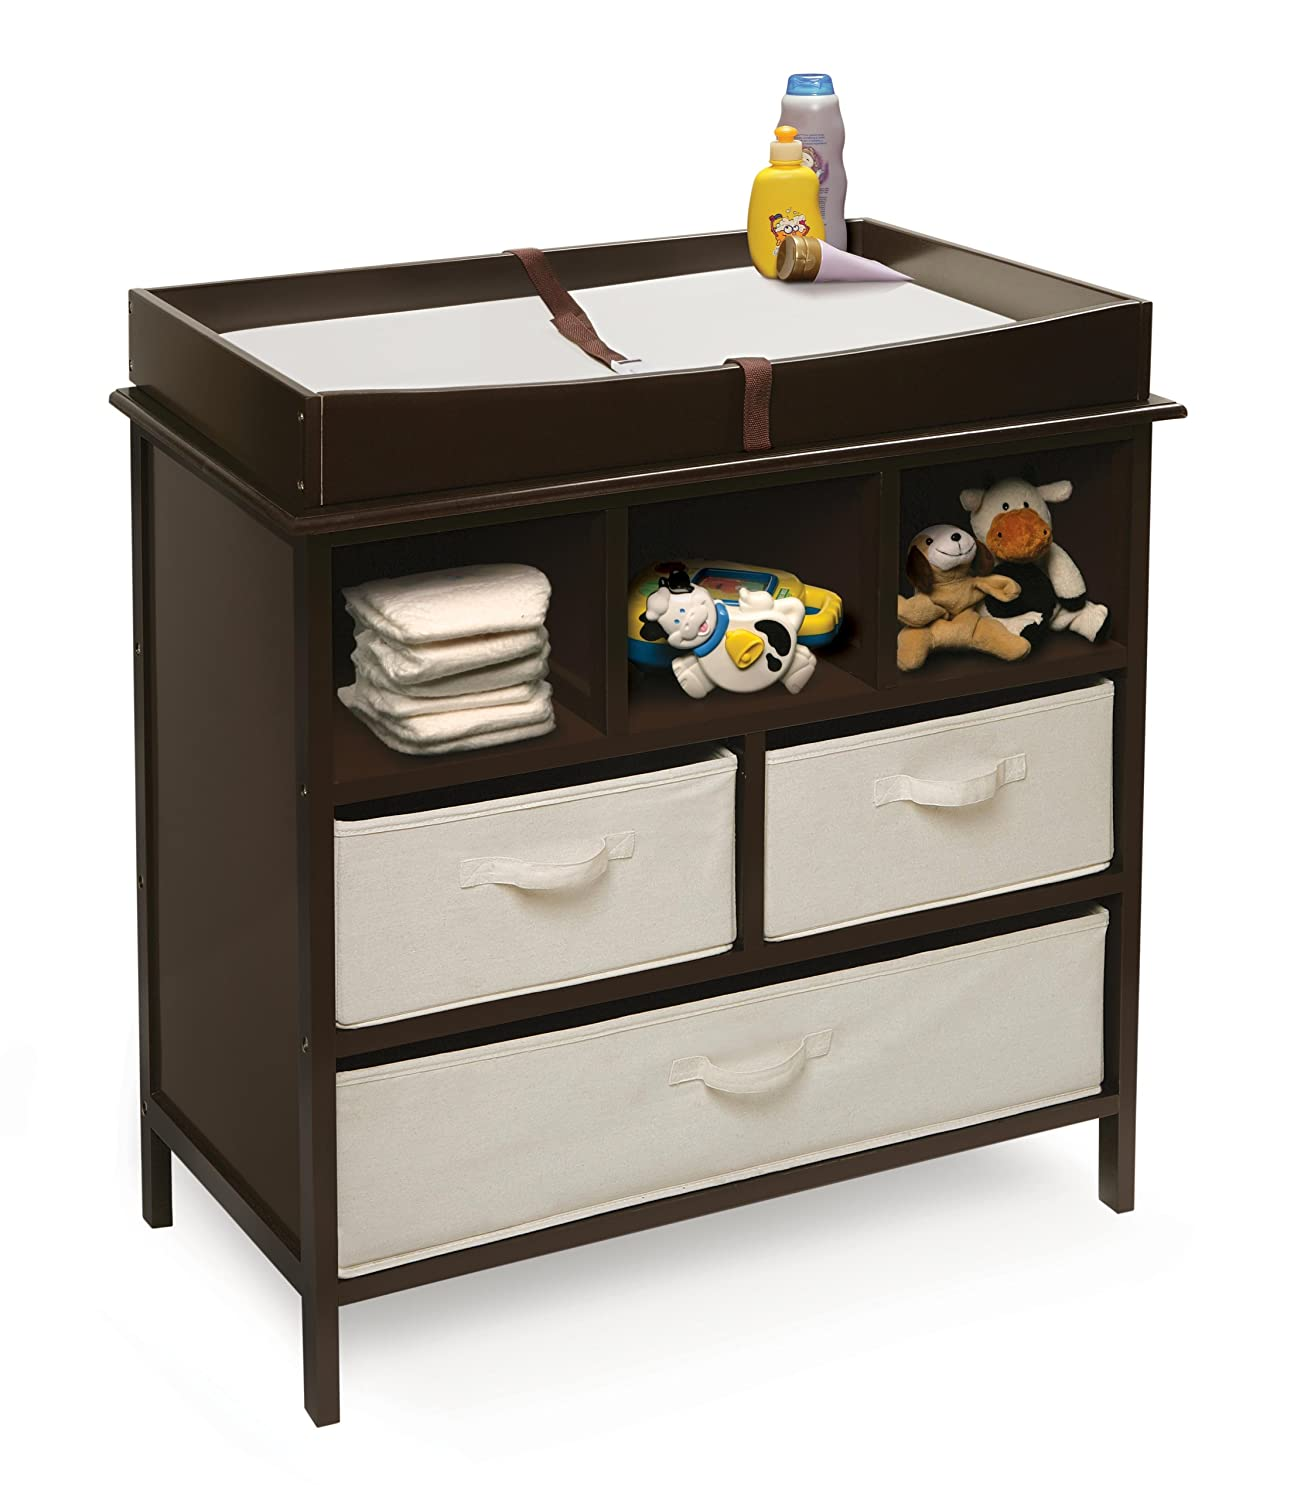 Amazon.com : Badger Basket Company Estate Baby Changing Table, Espresso :  Baby